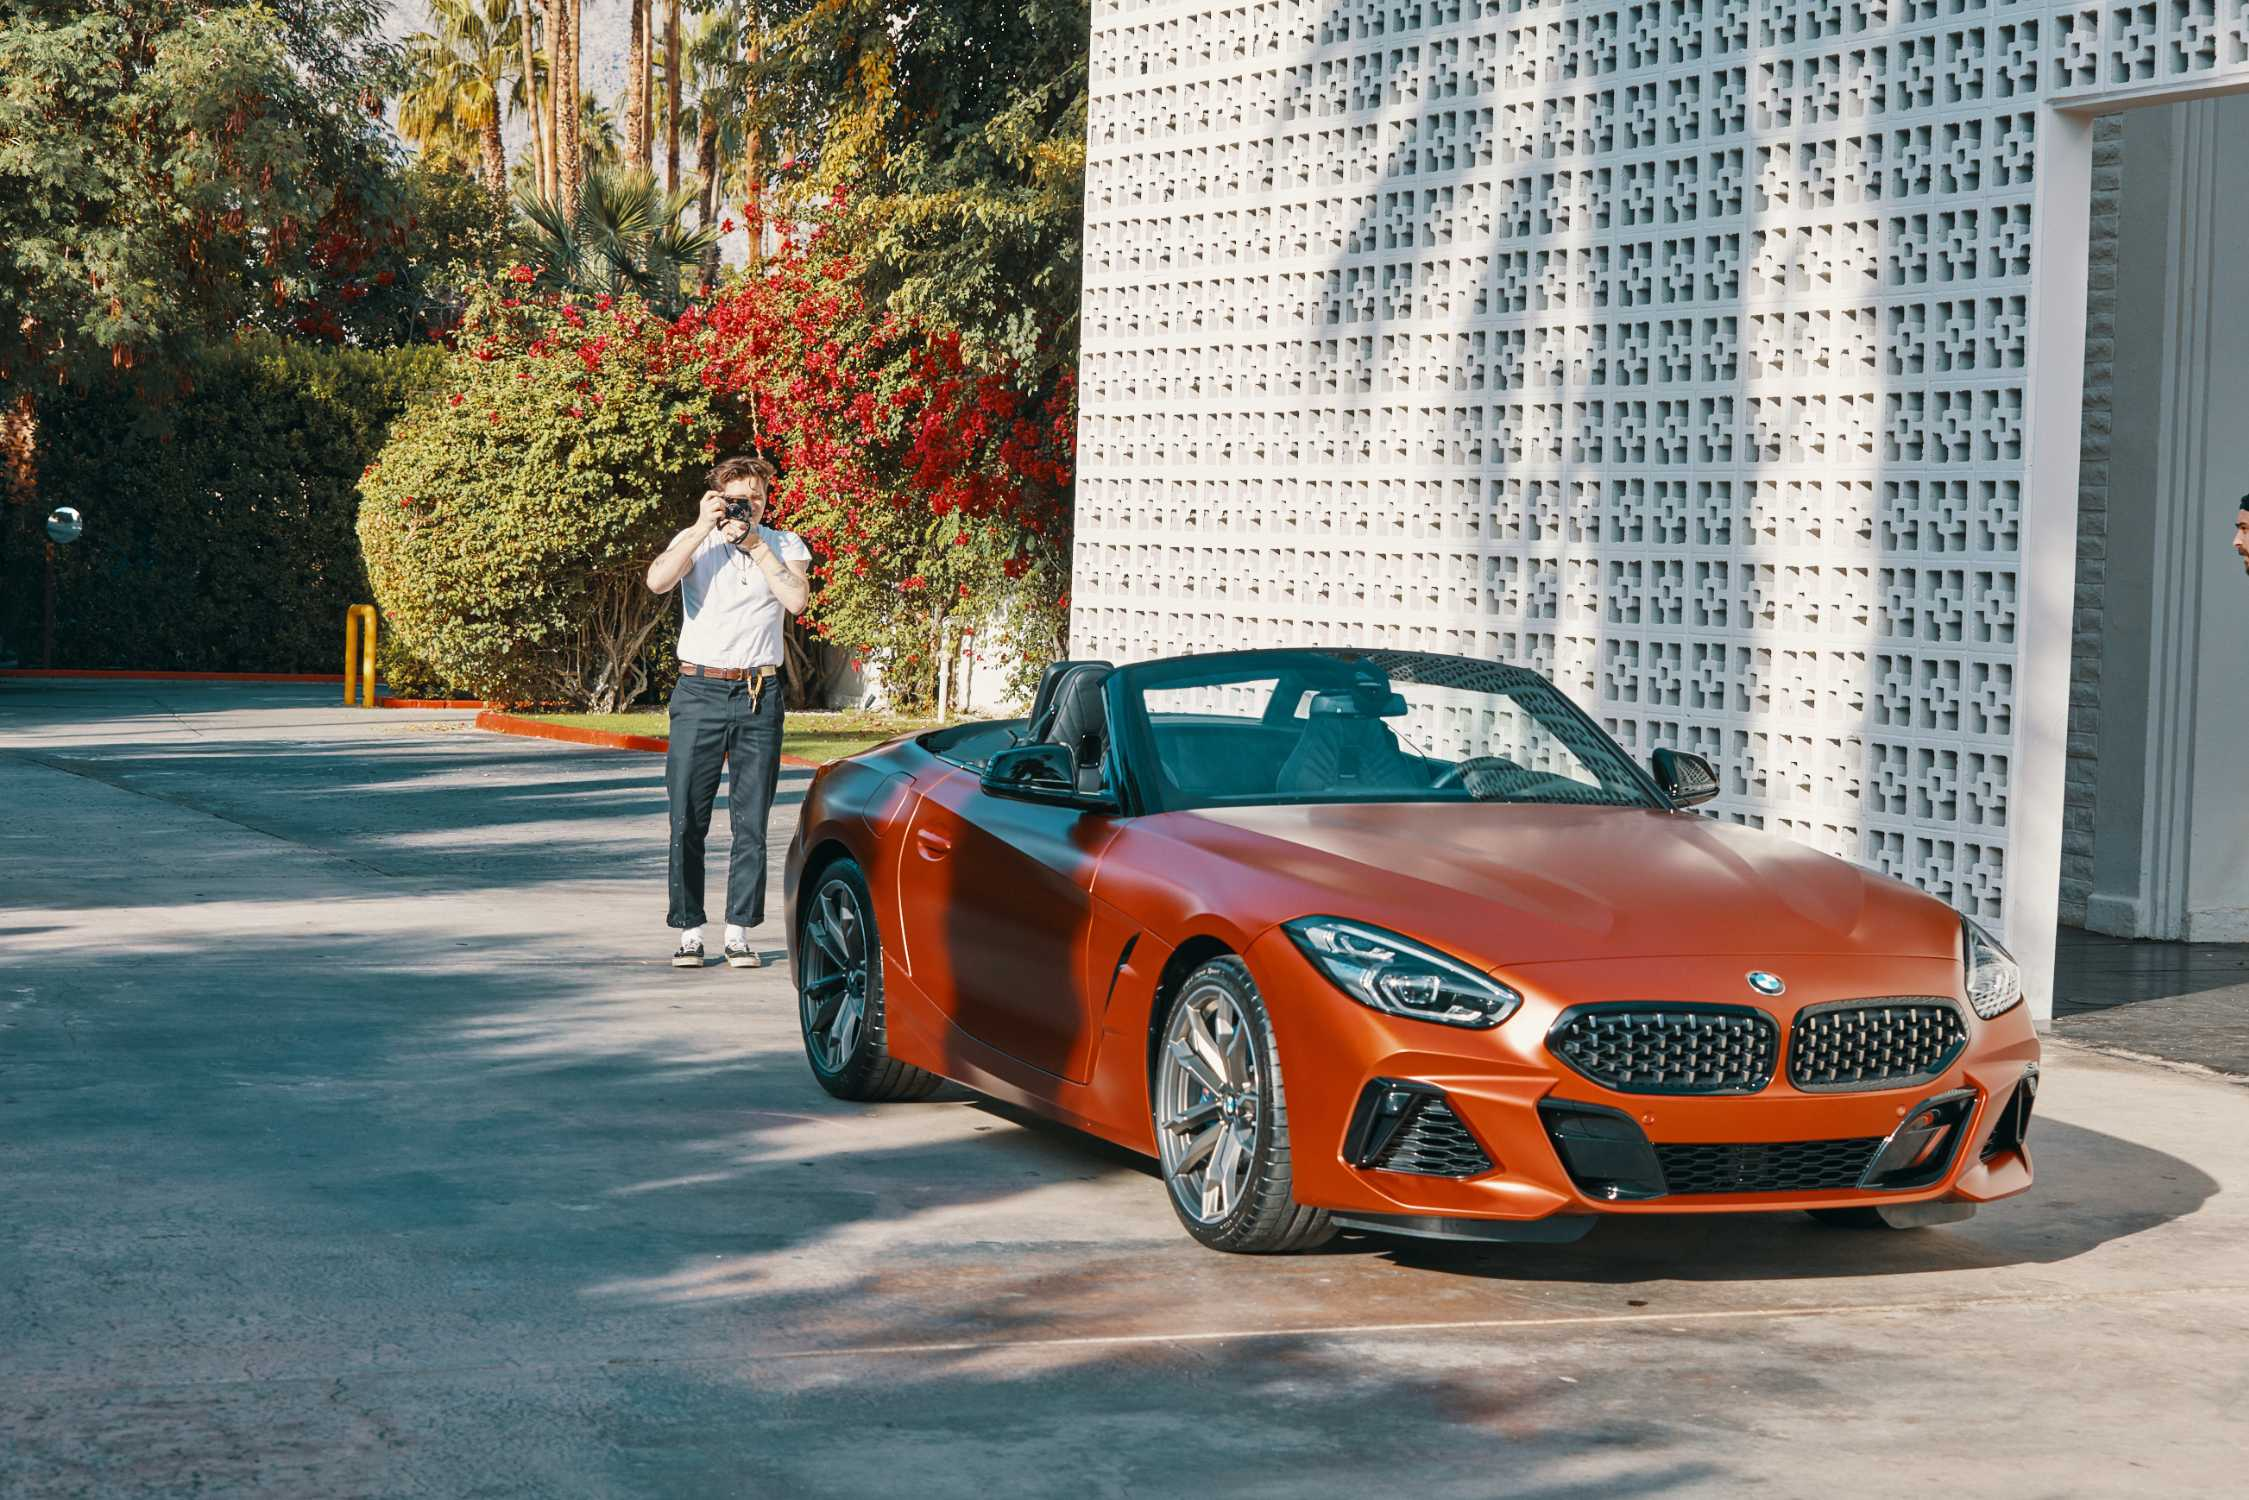 Cool And Dangerous Brooklyn Beckham Portrays The New Bmw Z4